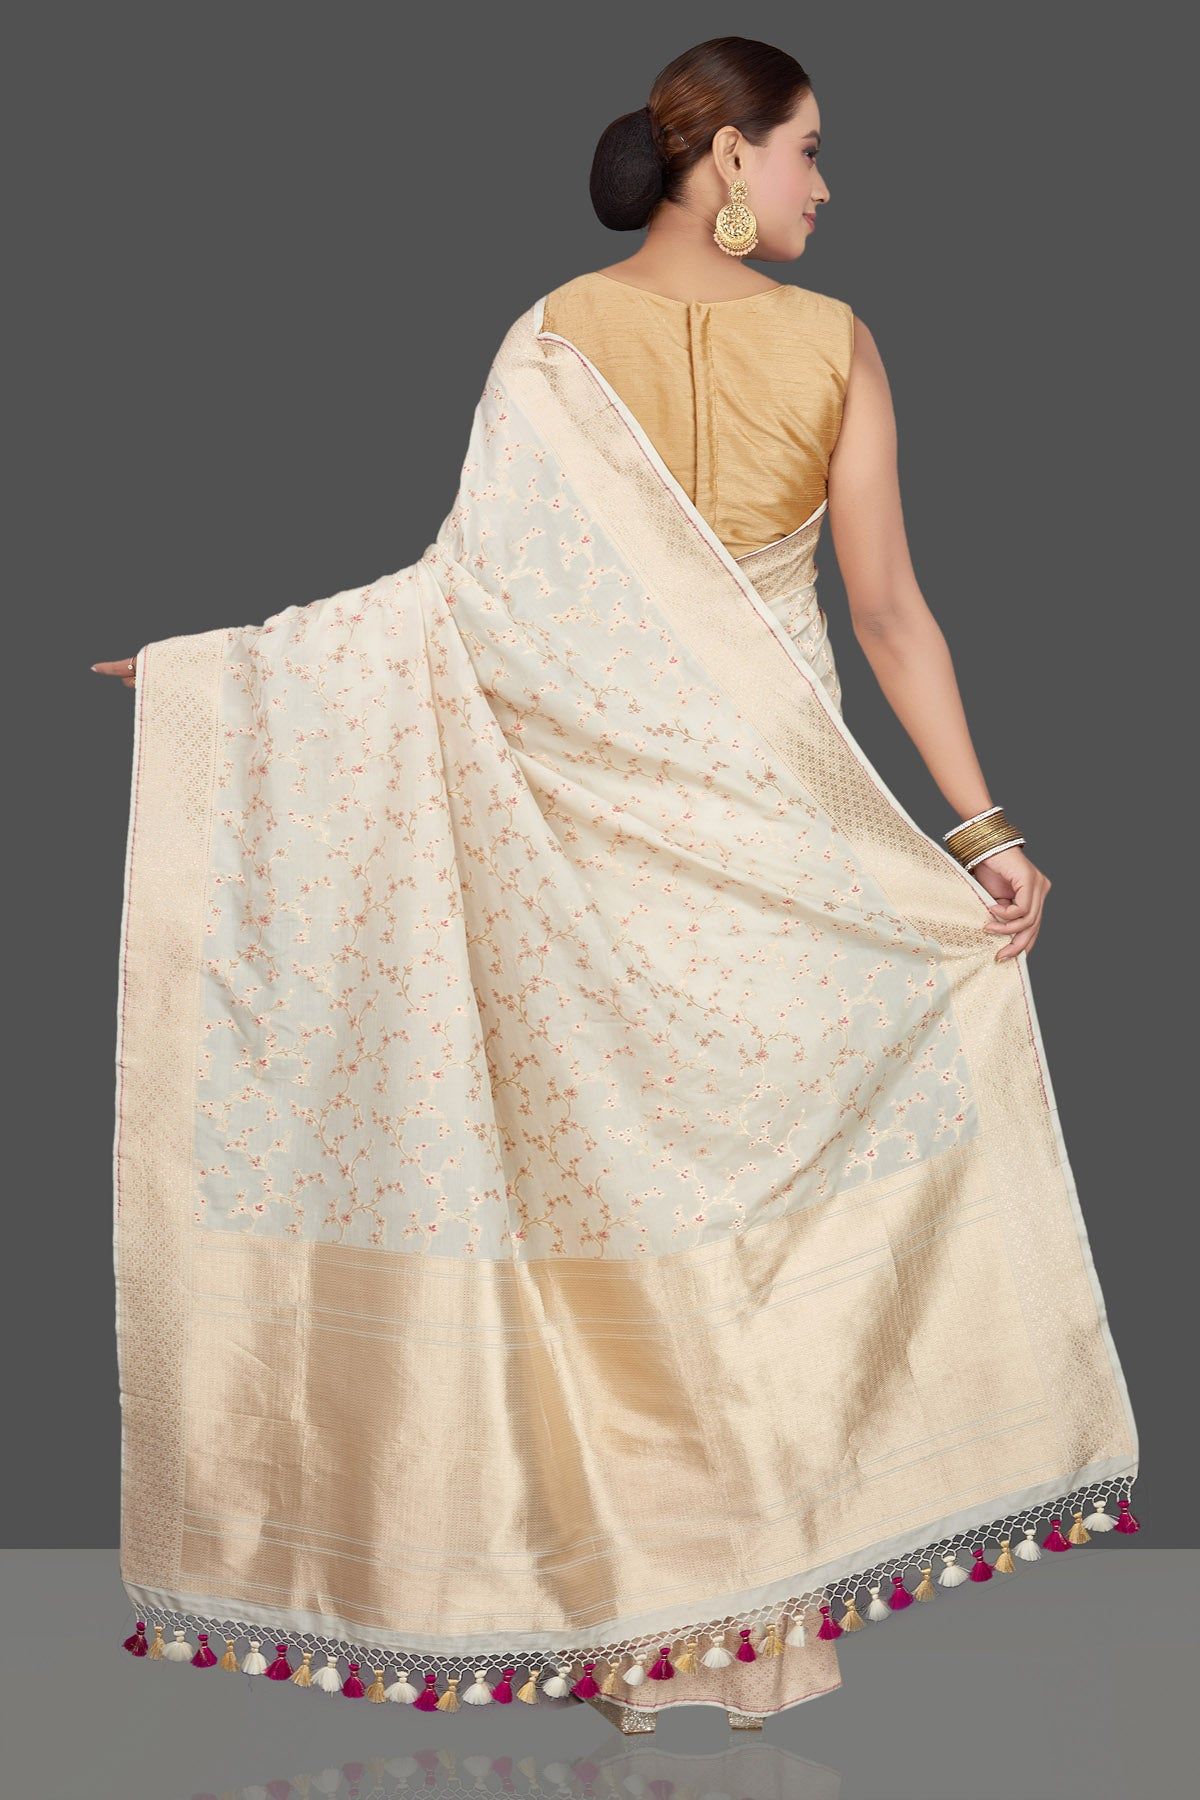 Buy beautiful off-white Katan silk sari online in USA with zari and minakari work. Make an impeccable ethnic fashion statement on festive occasions with traditional Indian sarees, pure silk sarees, designer sarees, handwoven sarees, Banarasi sarees from Pure Elegance Indian saree store in USA.-back